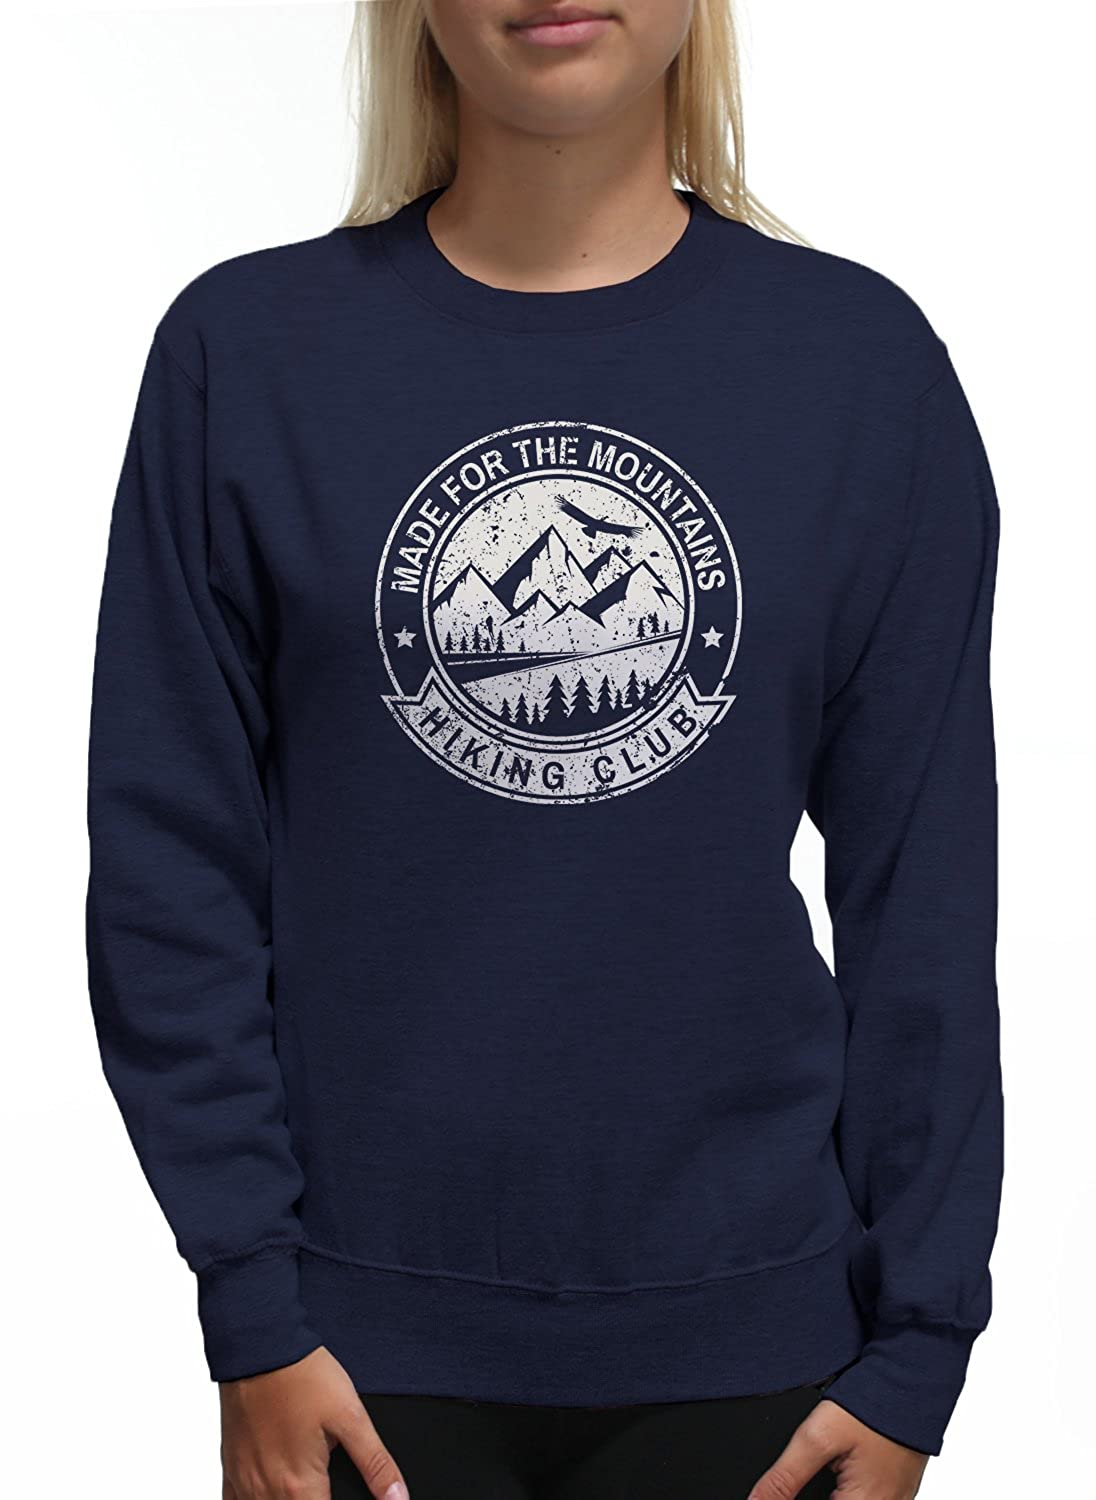 Young Motto Women's MADE FOR THE MOUNTAINS HIKING CLUB Sweatshirt 1104217-WSW